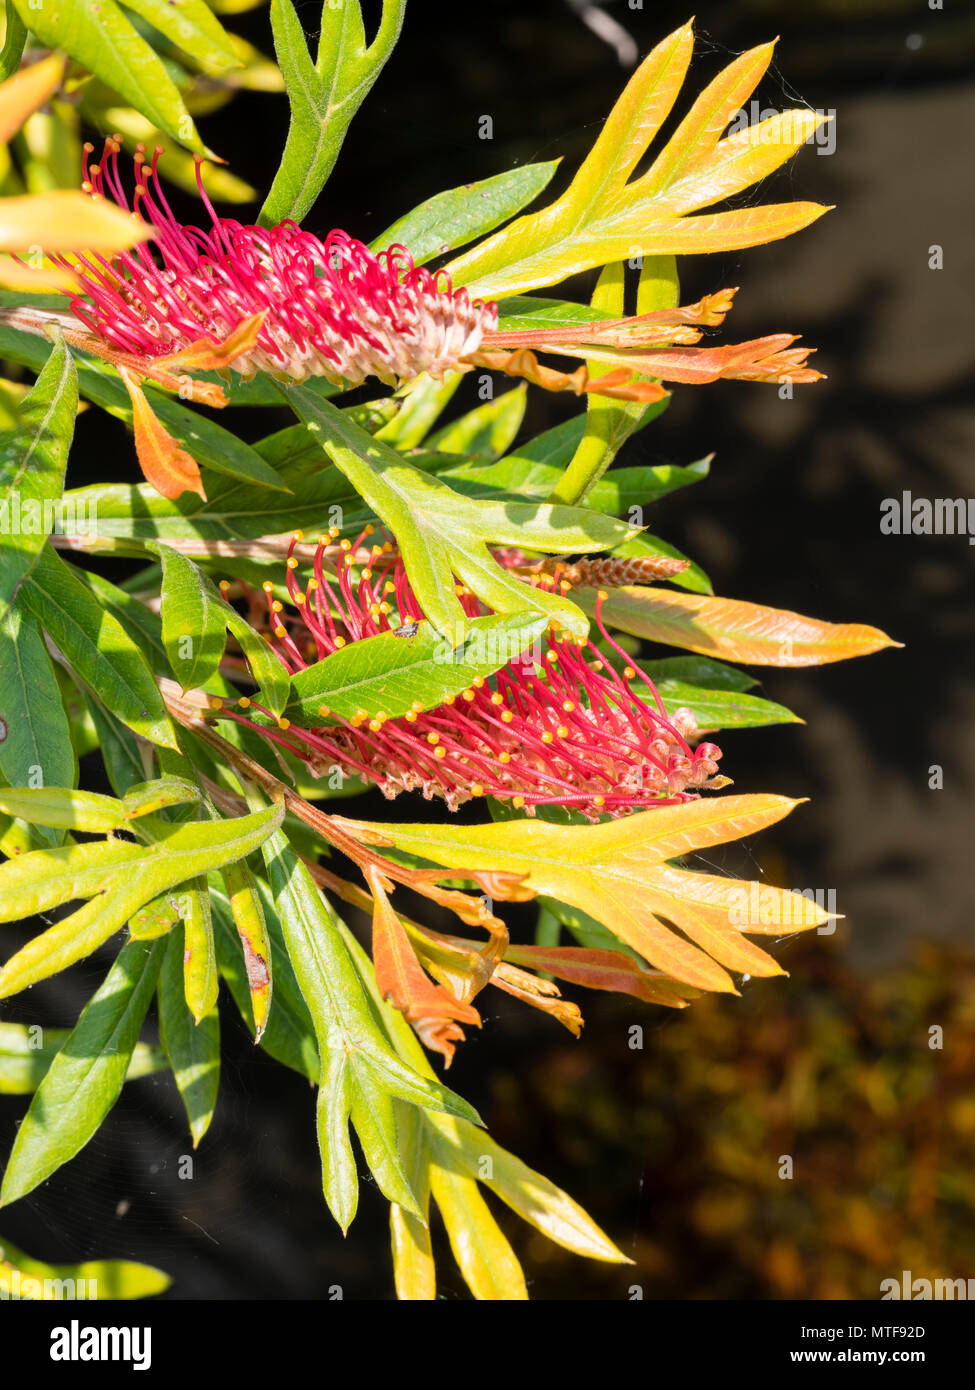 Unusual flowers of the Gully Grevillea, Grevillea barklyana, with prominent red styles, flowering in early summer in the UK - Stock Image